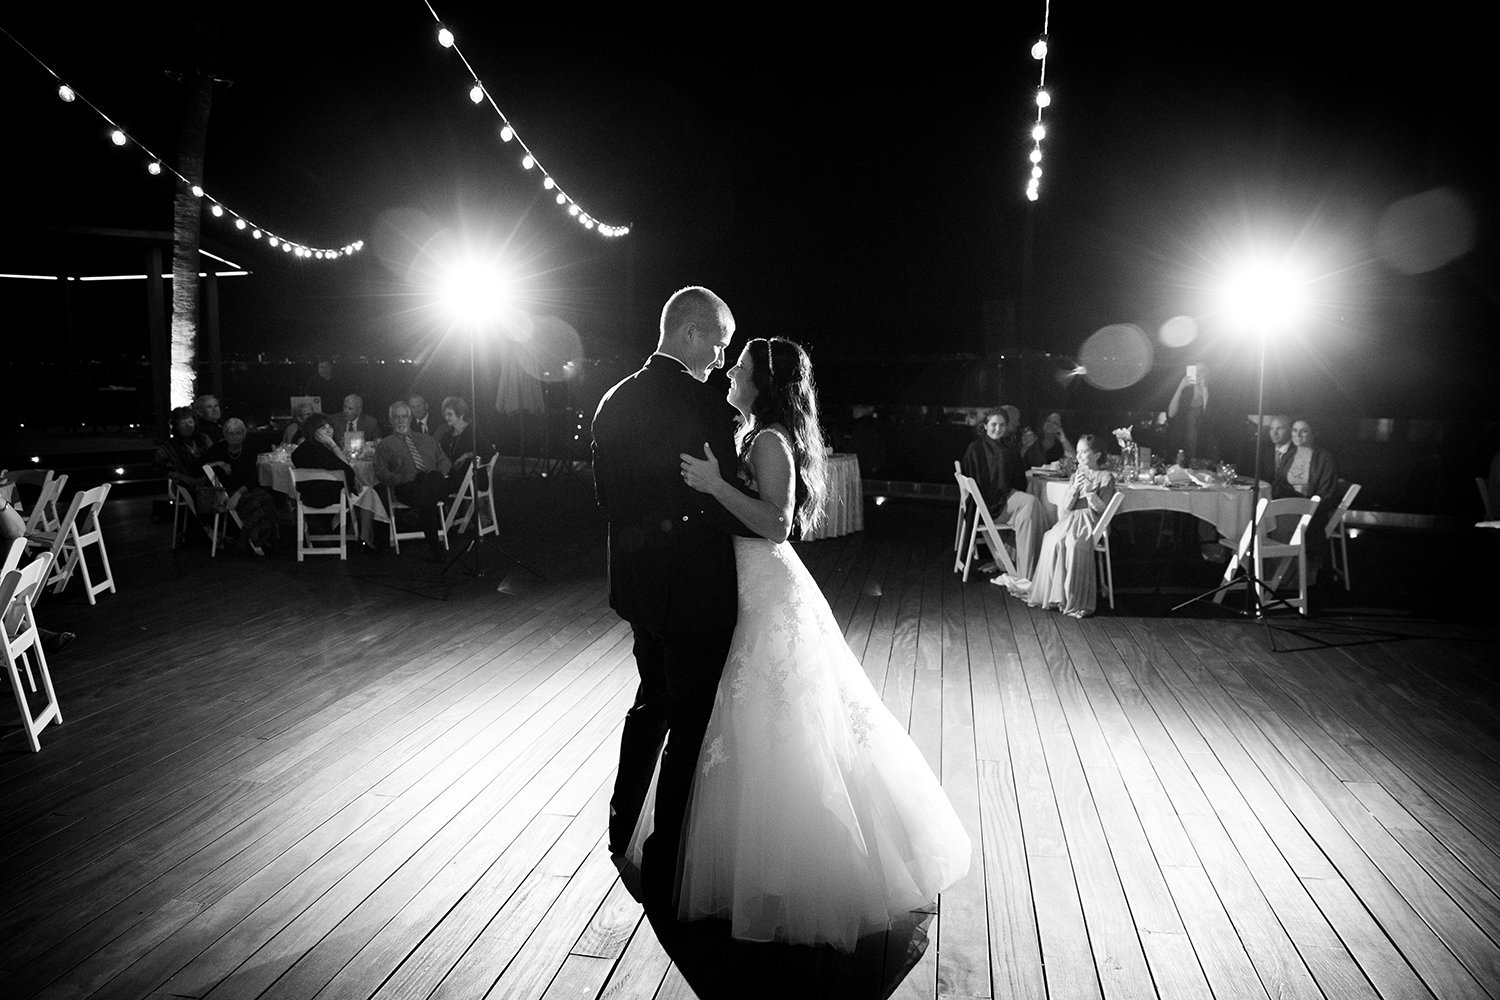 Point Loma Sub Base wedding photos first dance stunning black and white